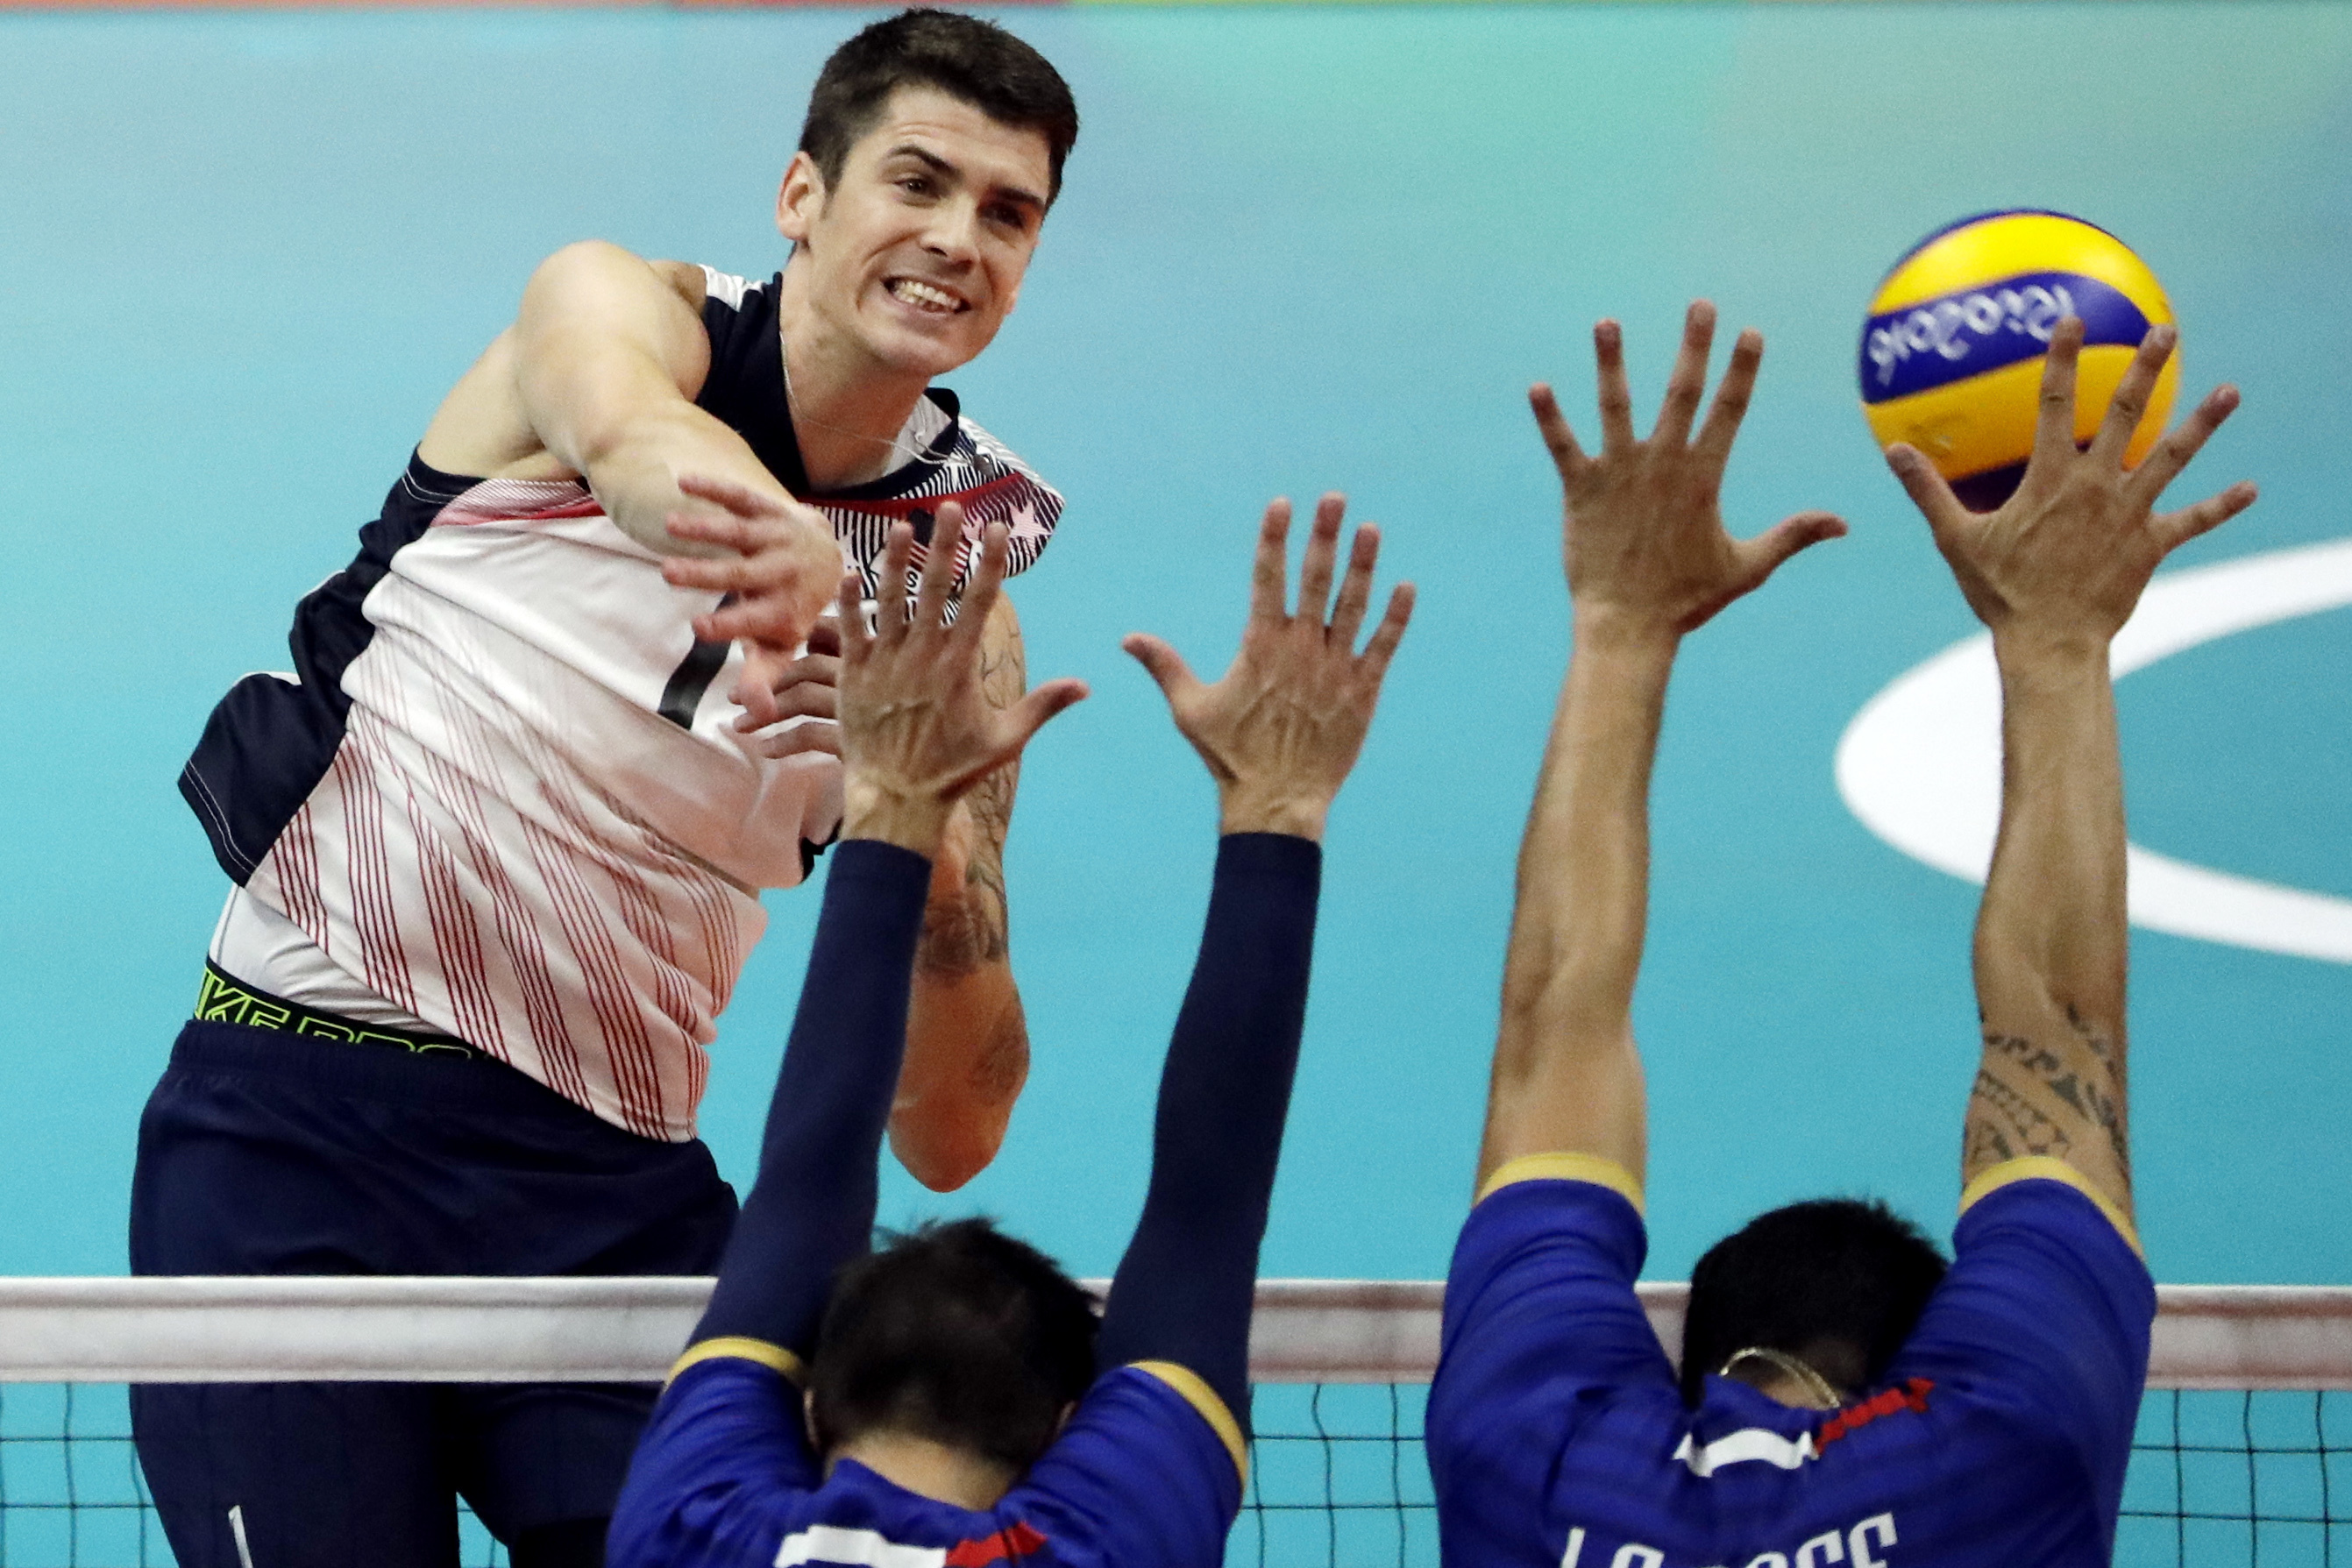 United States' Matthew Anderson, left, spikes the ball as France's Kevin Tillie center, and Nicolas le Goff block during a men's preliminary volleyball match at the 2016 Summer Olympics in Rio de Janeiro, Brazil, Saturday, Aug. 13, 2016. (AP Photo/Matt Ro